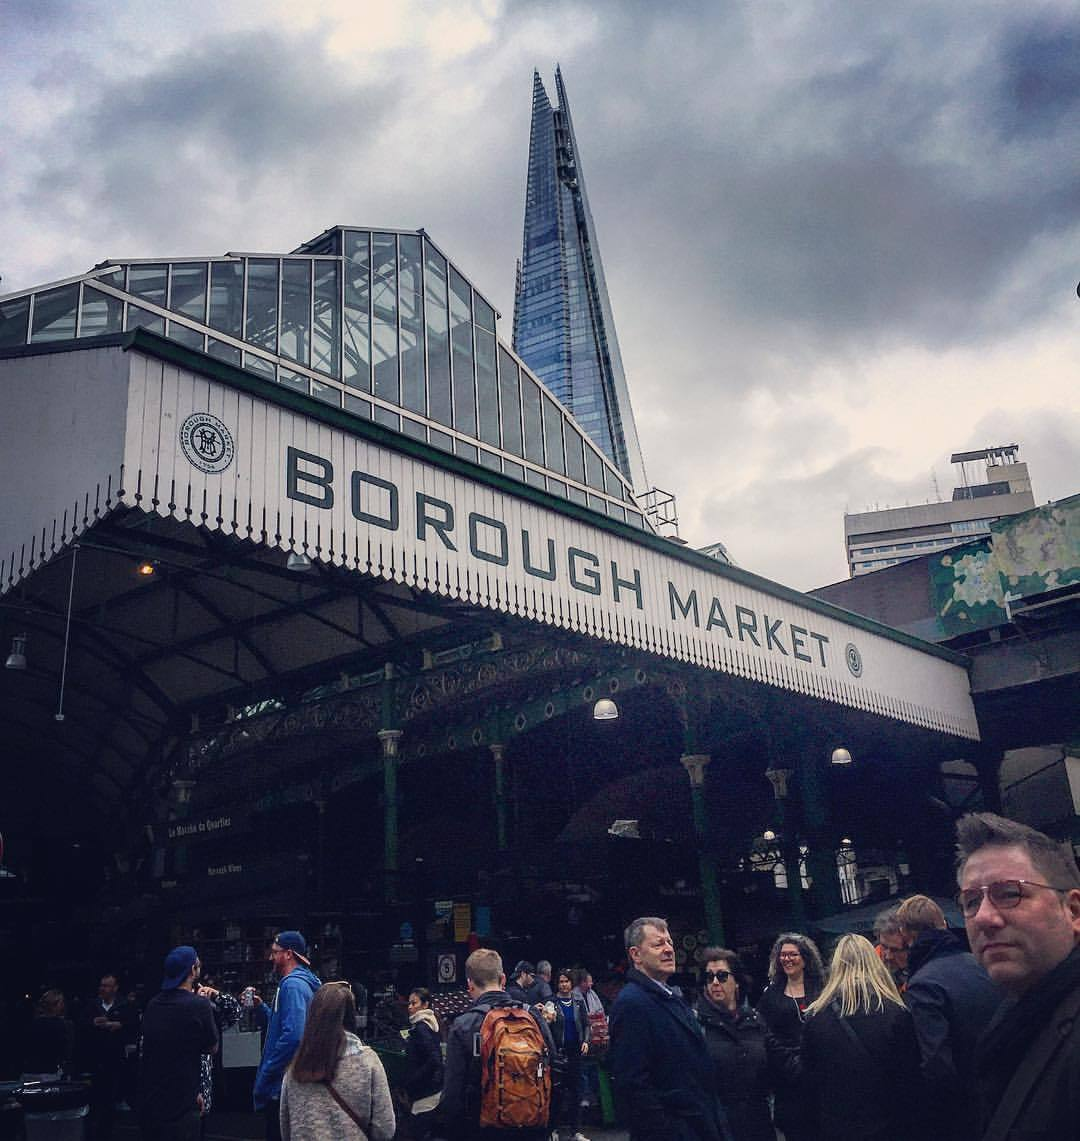 Shopping for dinner on a gray Saturday afternoon, alongside a million other jostling souls.  #england #london #boroughmarket  (at Borough Market)